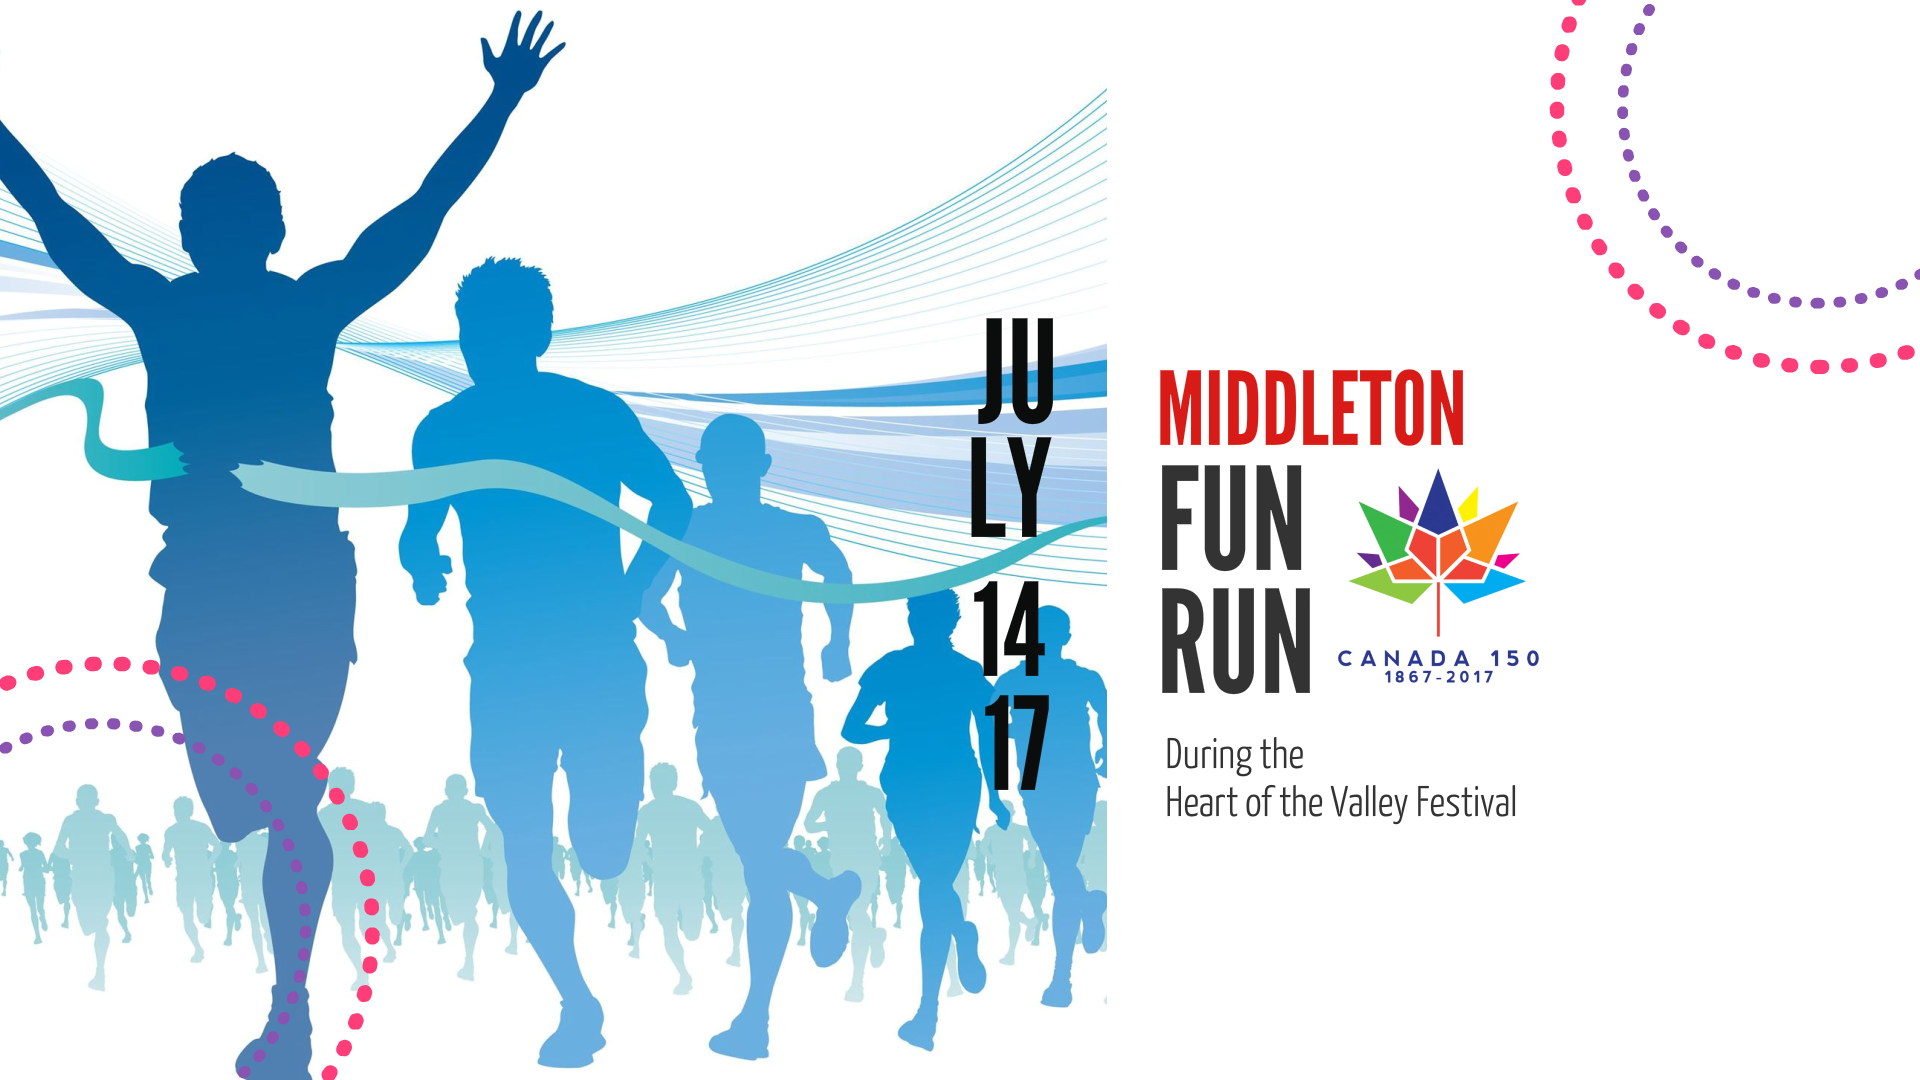 Canada 150 Fun Run at Centennial Park, Middleton (July 14, 2017 6: - Fun Run PNG HD